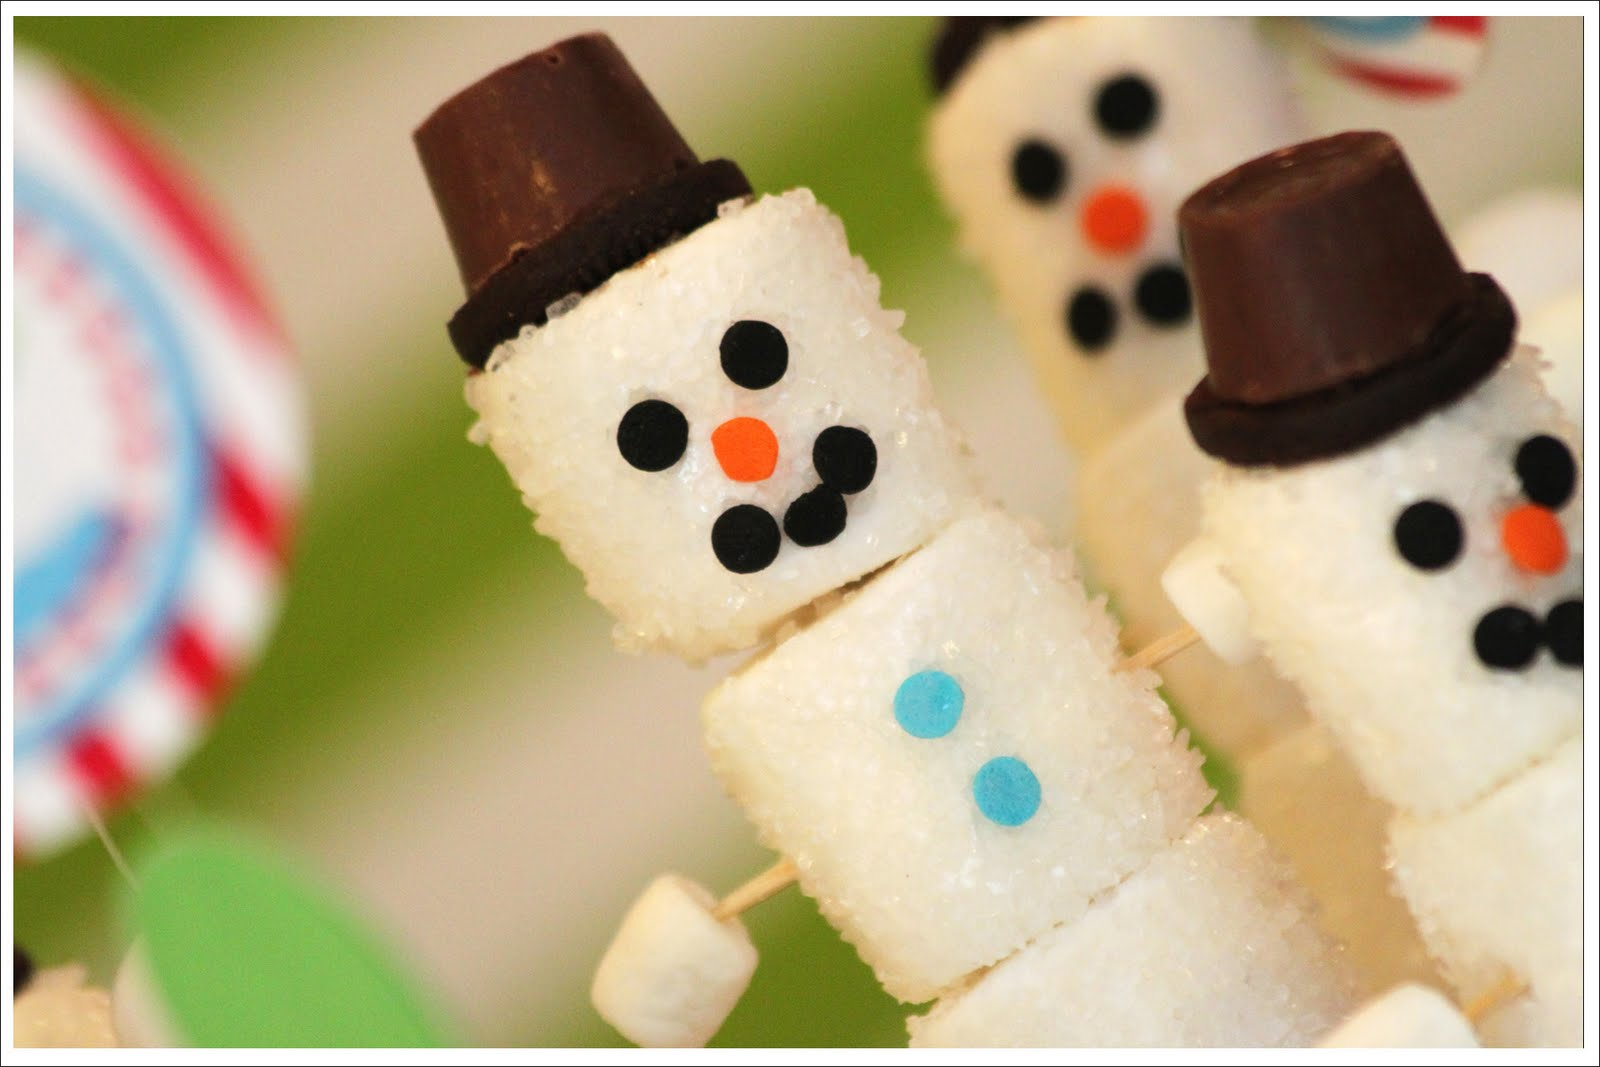 Thousands of wonderful art and craft ideas to do with kids that are fun, easy, and enjoyable for grown-ups too! You'll find crafts, art, activities, games, treats, and more for all holidays, seasons, and ages.